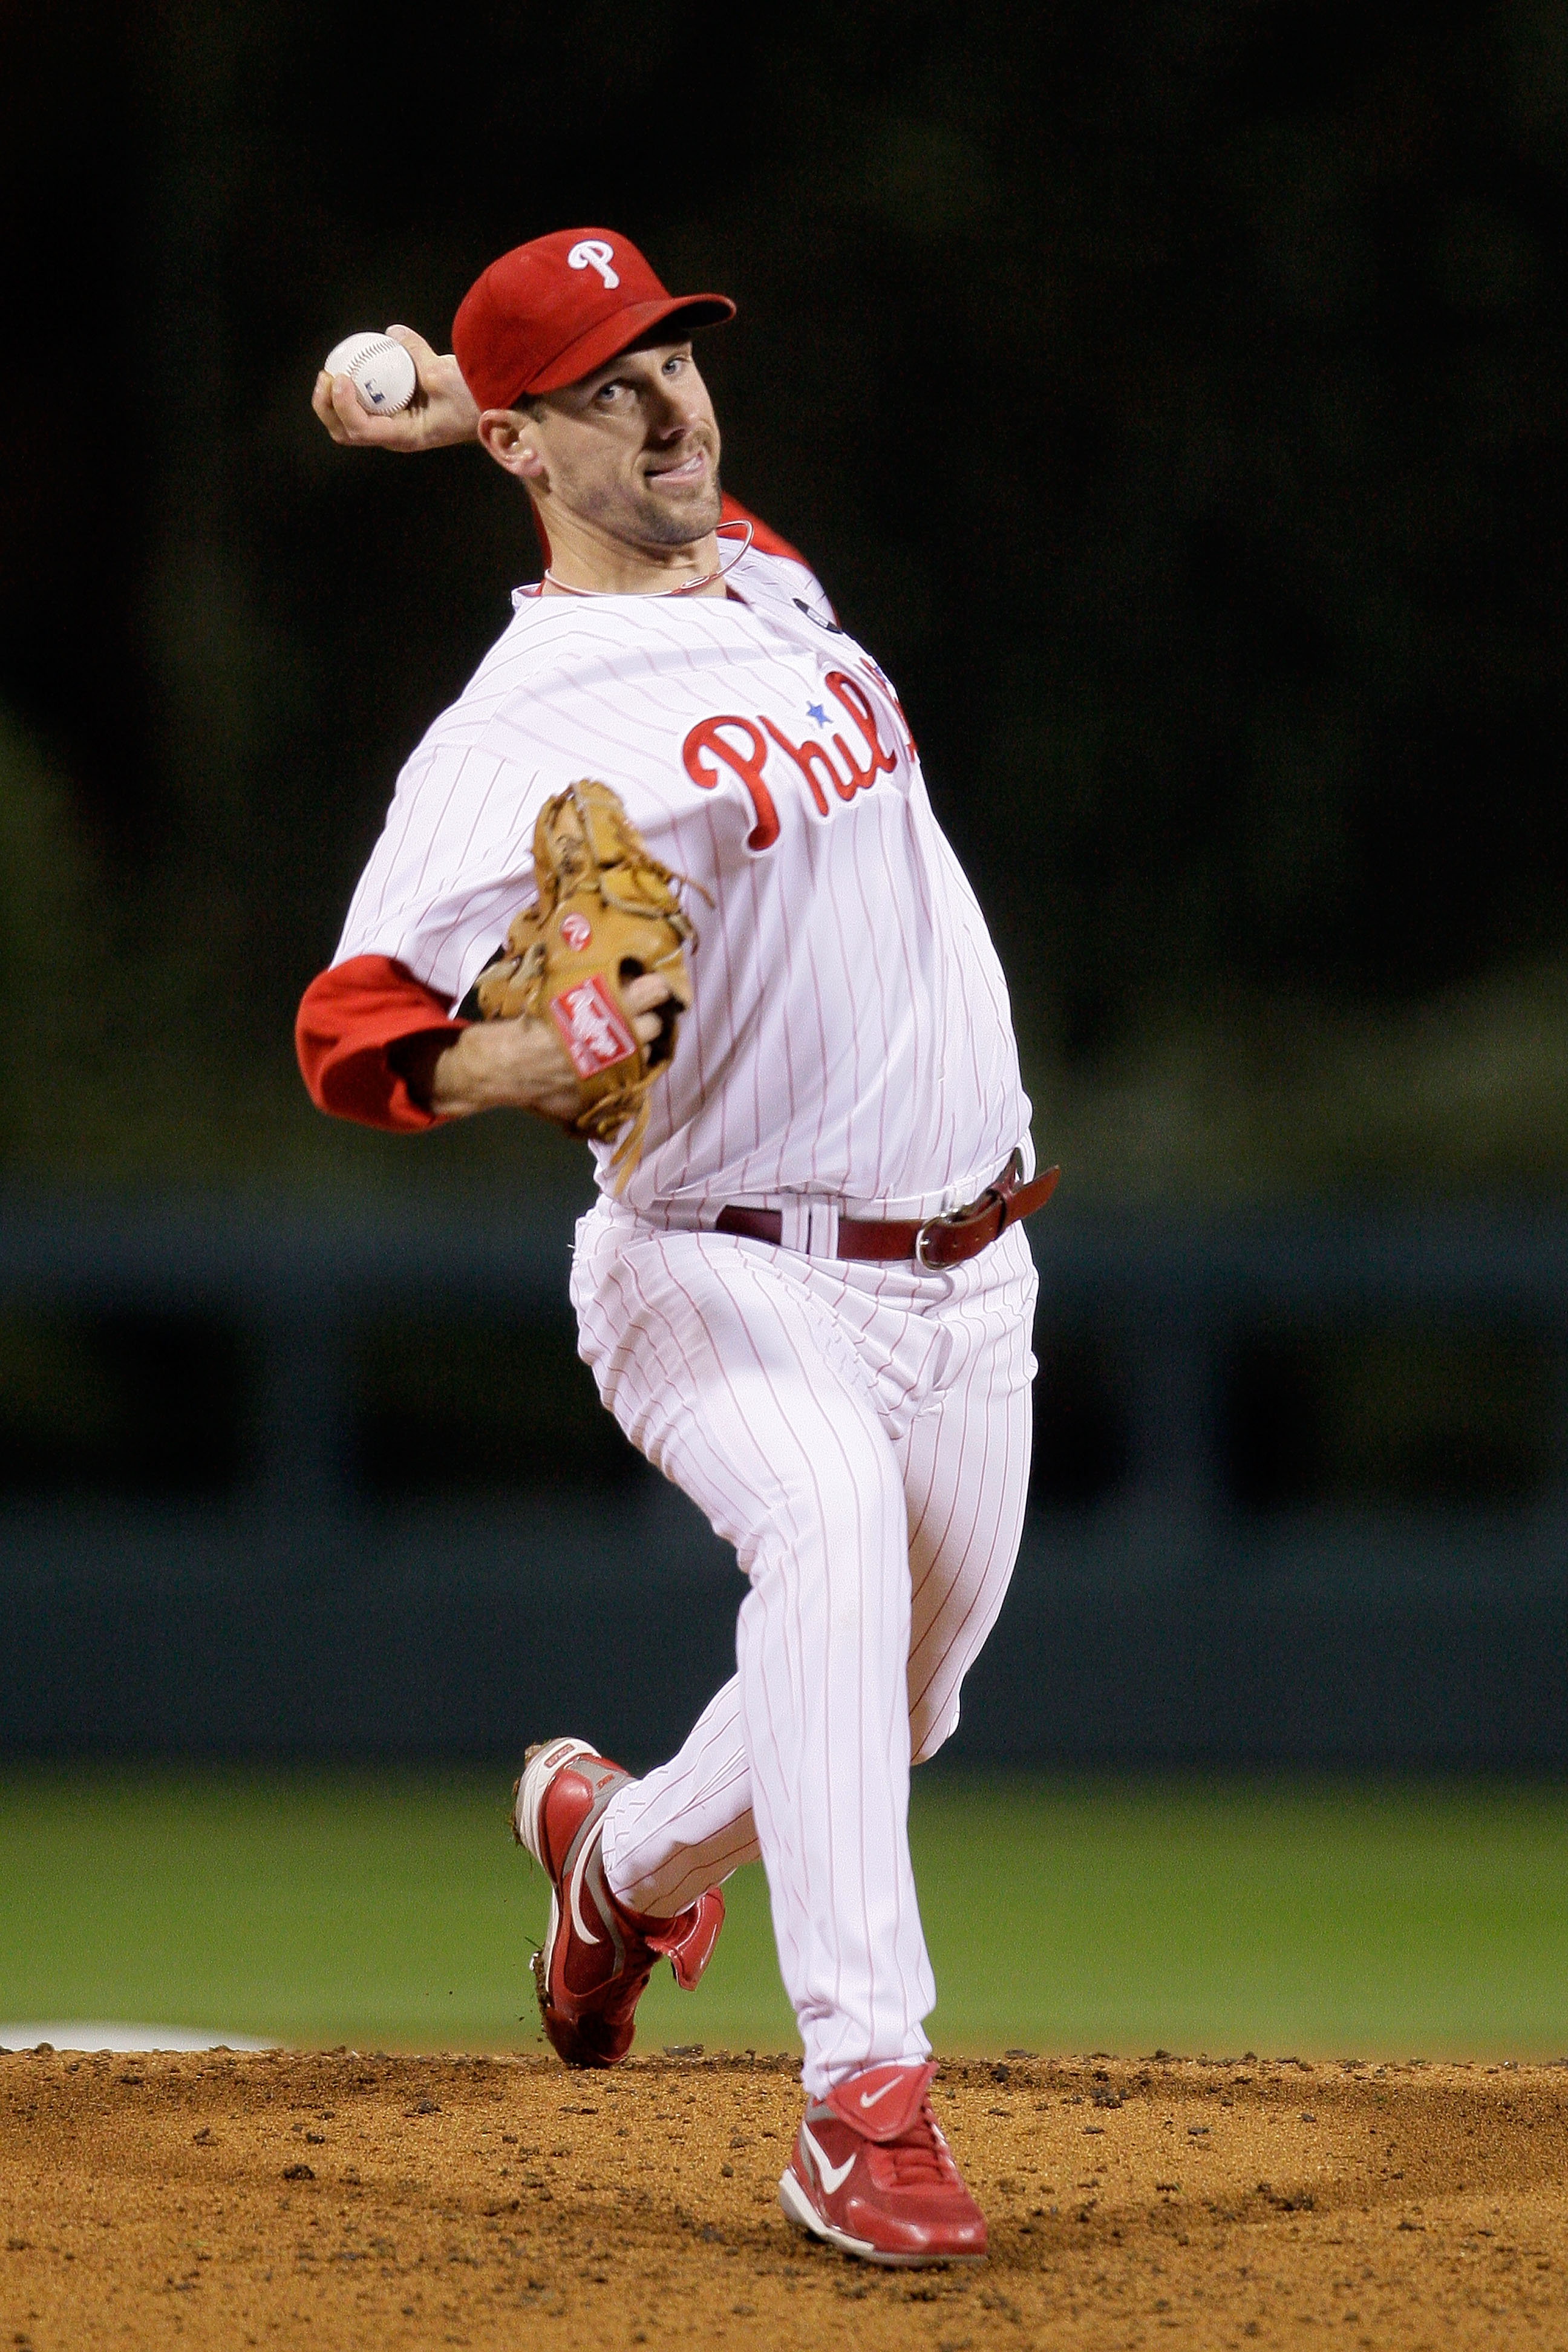 PHILADELPHIA - OCTOBER 18:  Cliff Lee #34 of the Philadelphia Phillies pitches against the Los Angeles Dodgers during Game Three of the NLCS during the 2009 MLB Playoffs at Citizens Bank Park on October 18, 2009 in Philadelphia, Pennsylvania.  (Photo by P